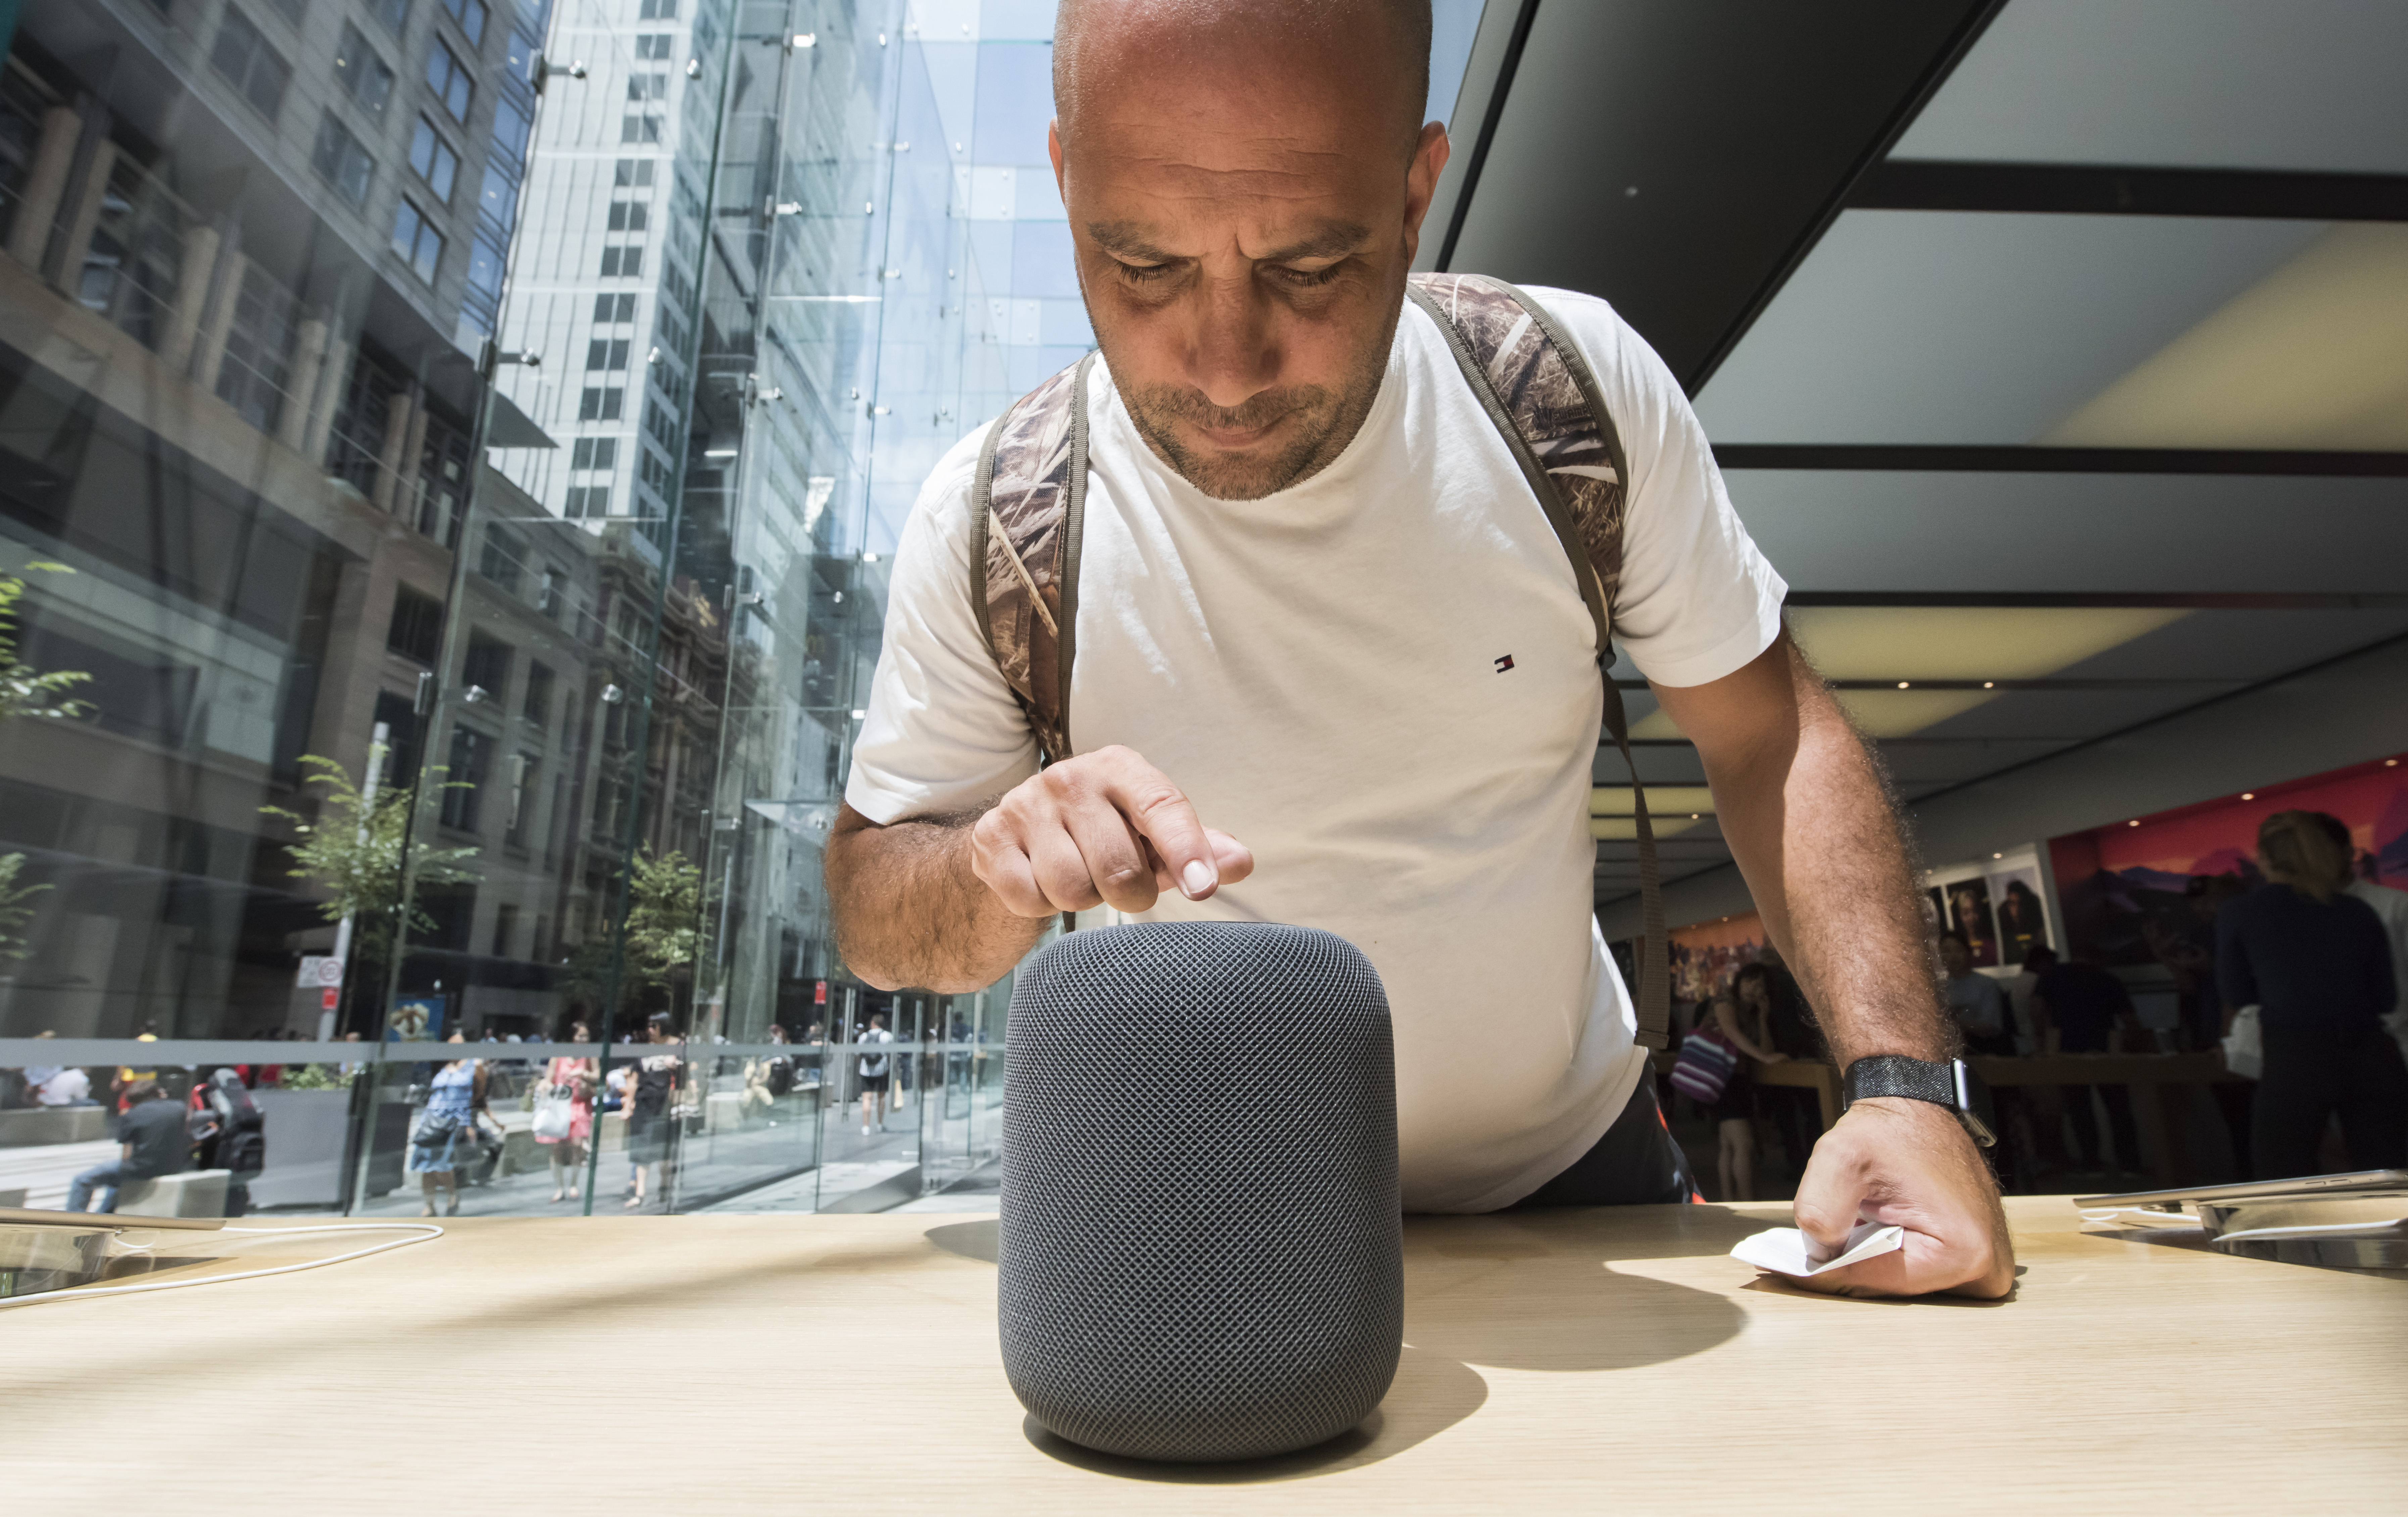 Customers interacting with the new product at the launch of the HomePod at the Apple Store on February 9, 2018 in Sydney, Australia.